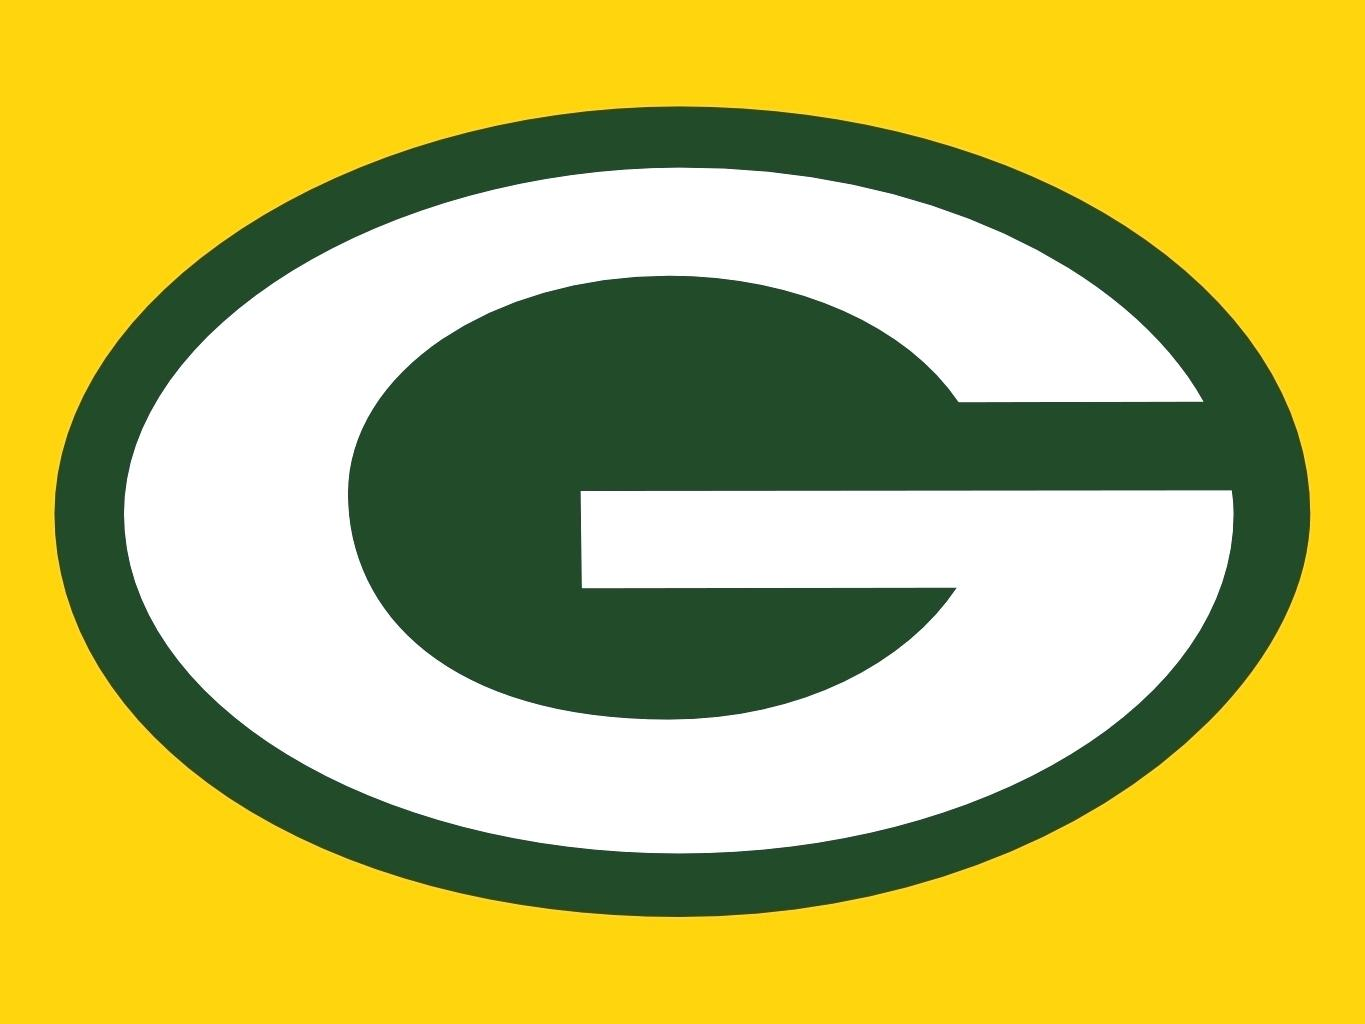 Green bay packer clipart free jpg royalty free Collection of Green bay clipart | Free download best Green bay ... jpg royalty free